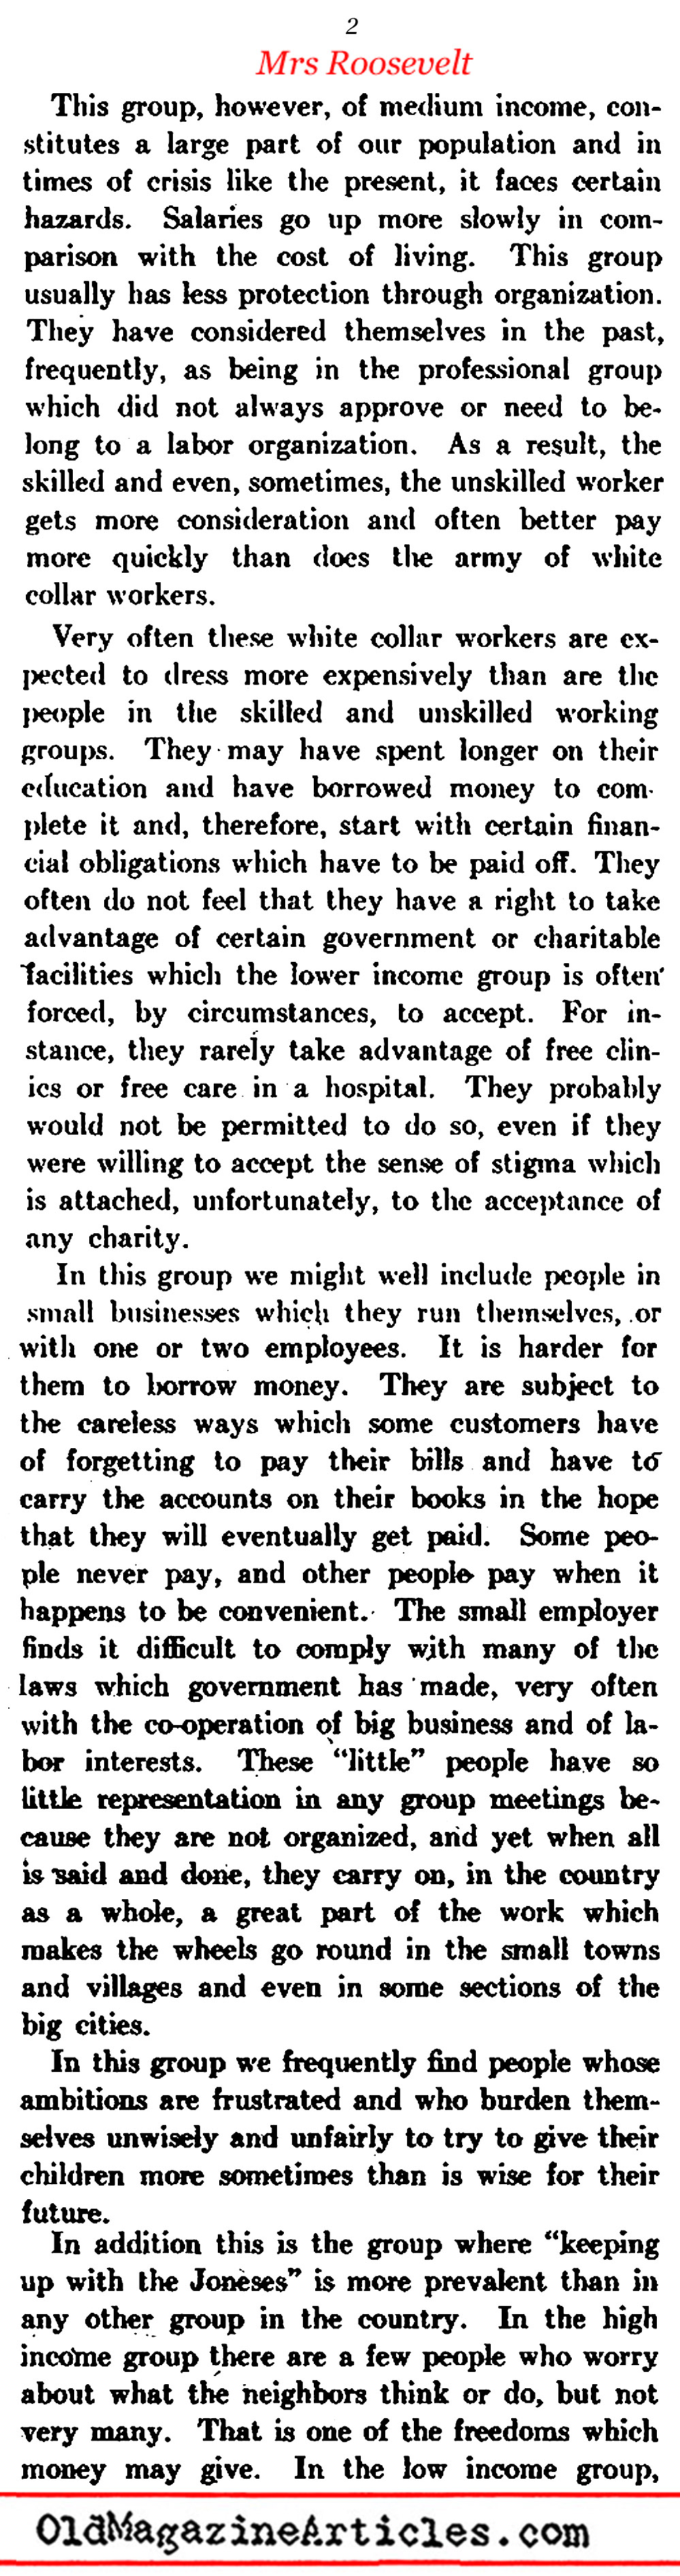 ''A Message to the White Collar Class'' (Pic Magazine, 1941)